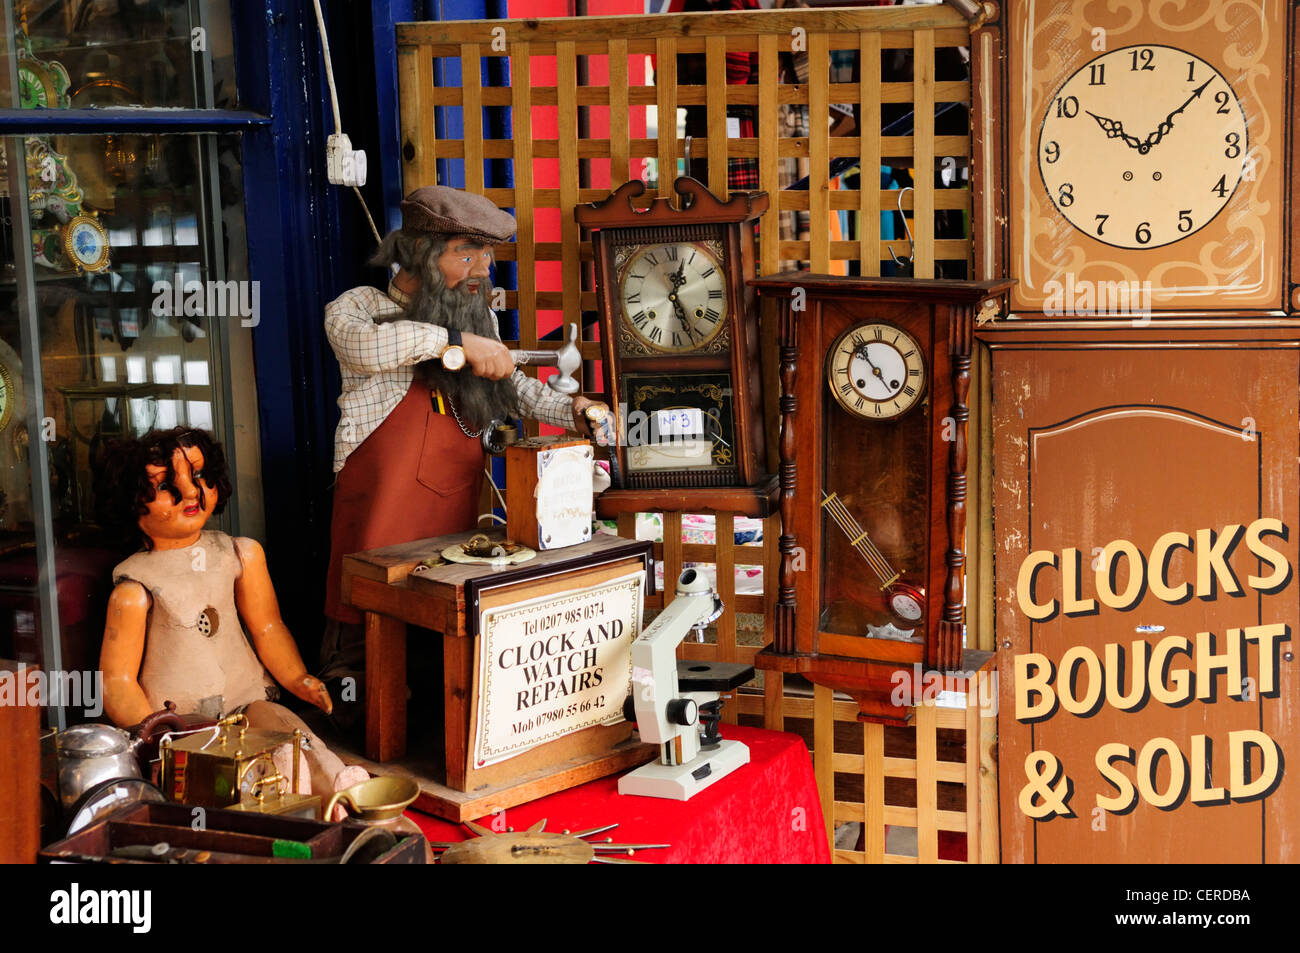 The window display of a Clock and Watch Repairs shop on Portobello Road. - Stock Image